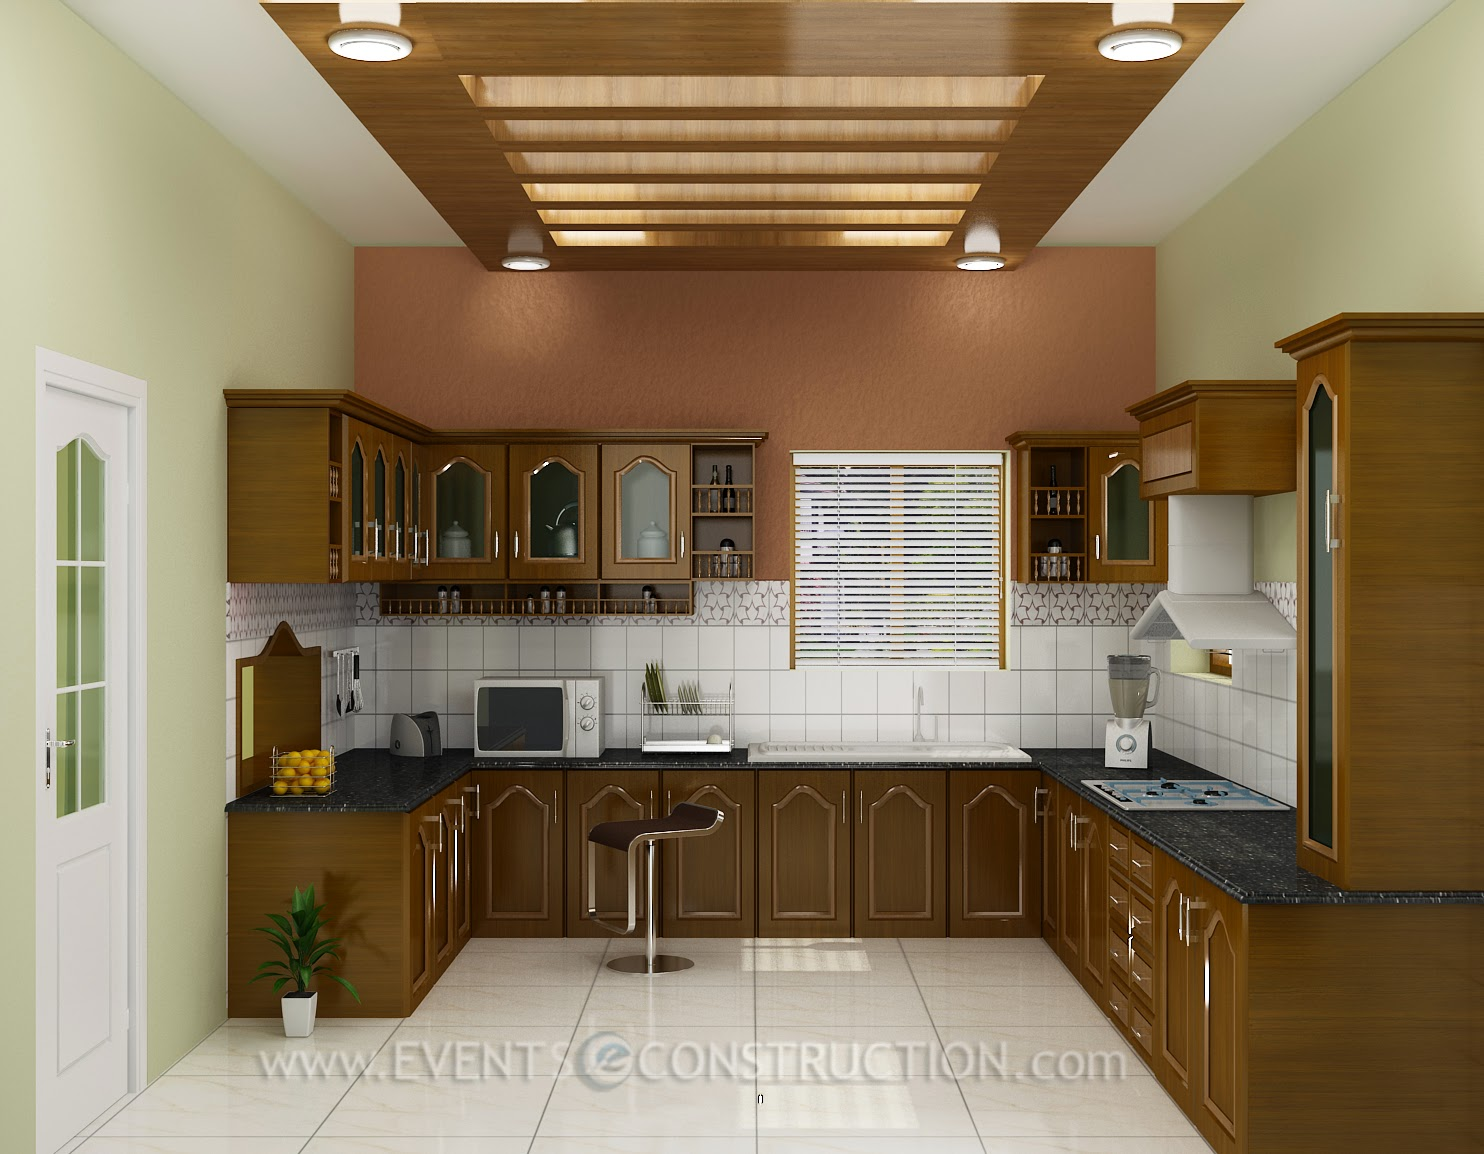 Evens construction pvt ltd kerala kitchen interior design for Kitchen designs kerala